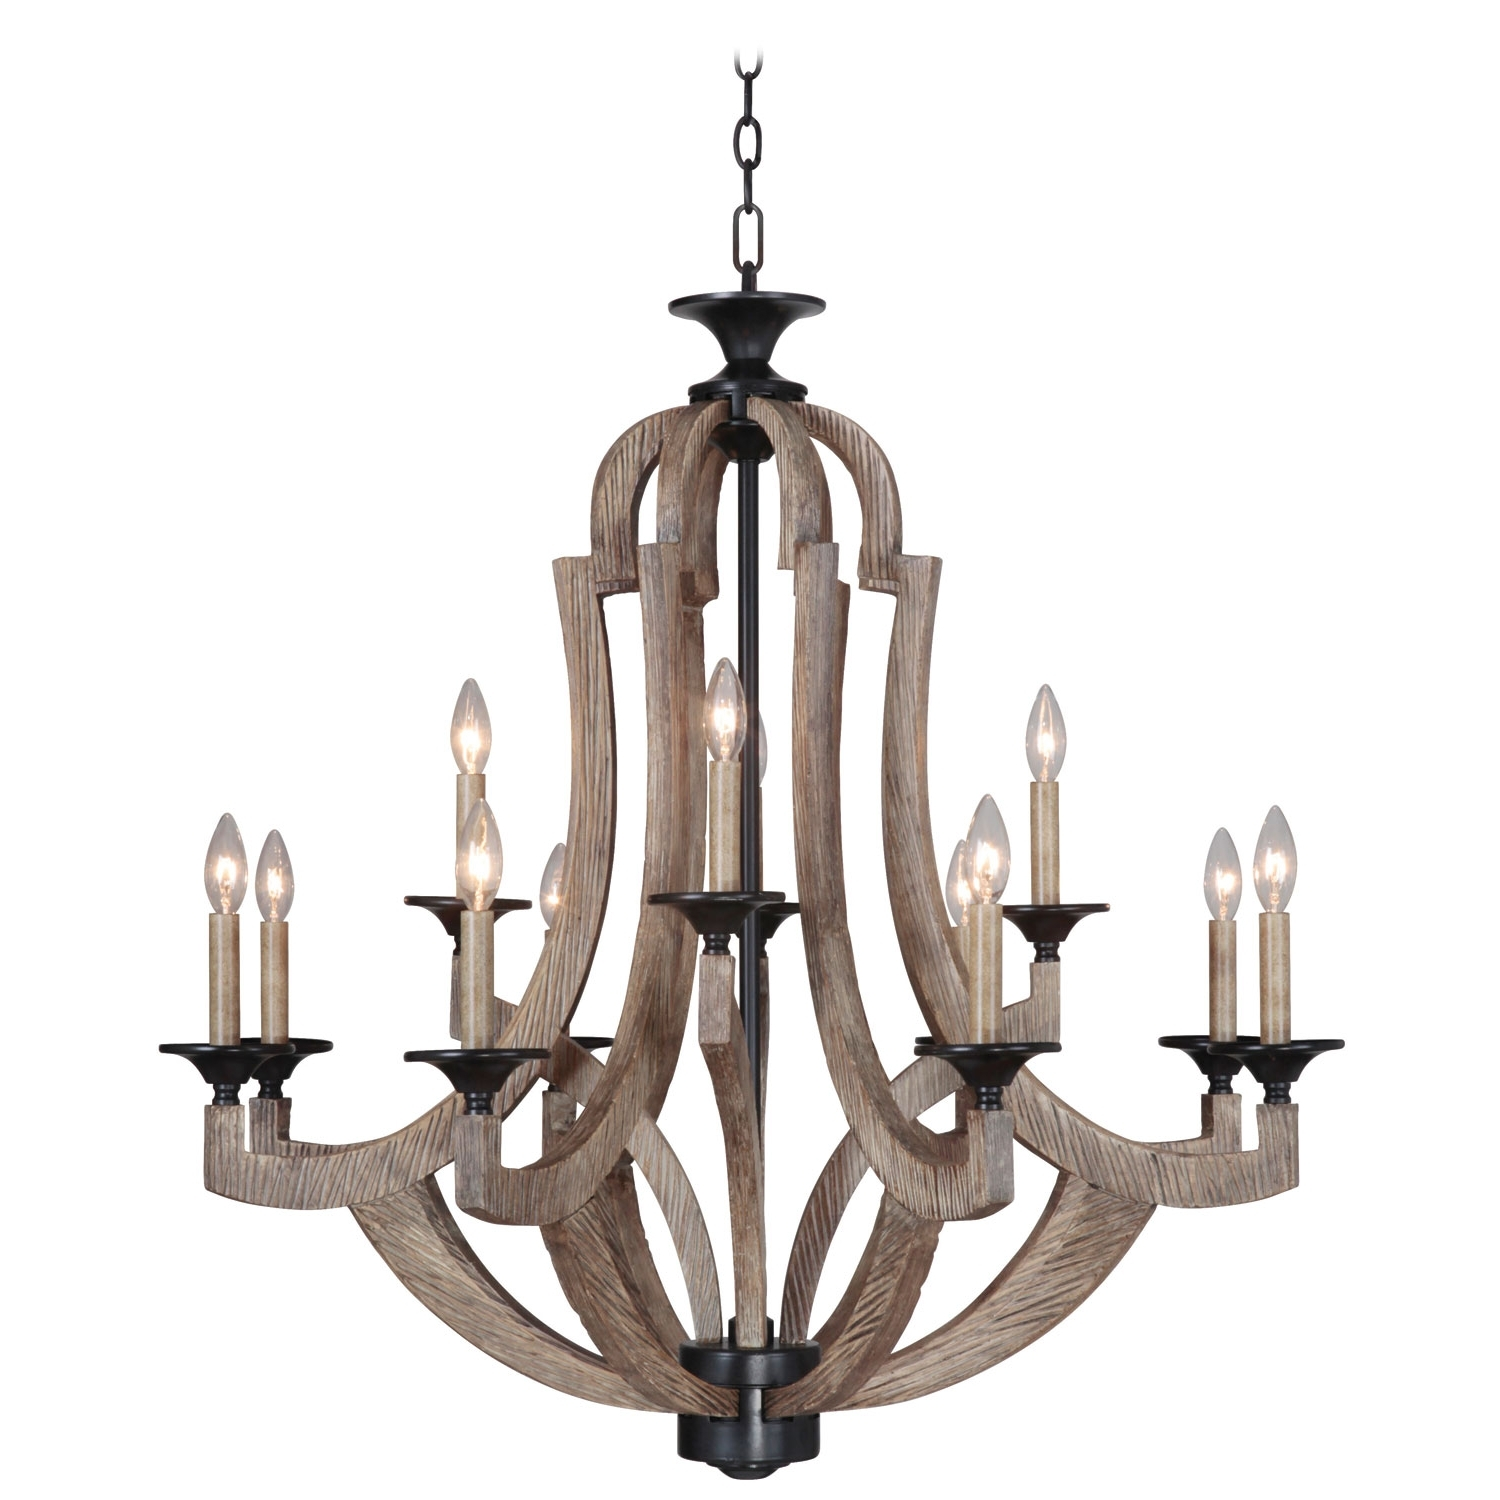 Chandelier Lighting On Sale (View 4 of 20)